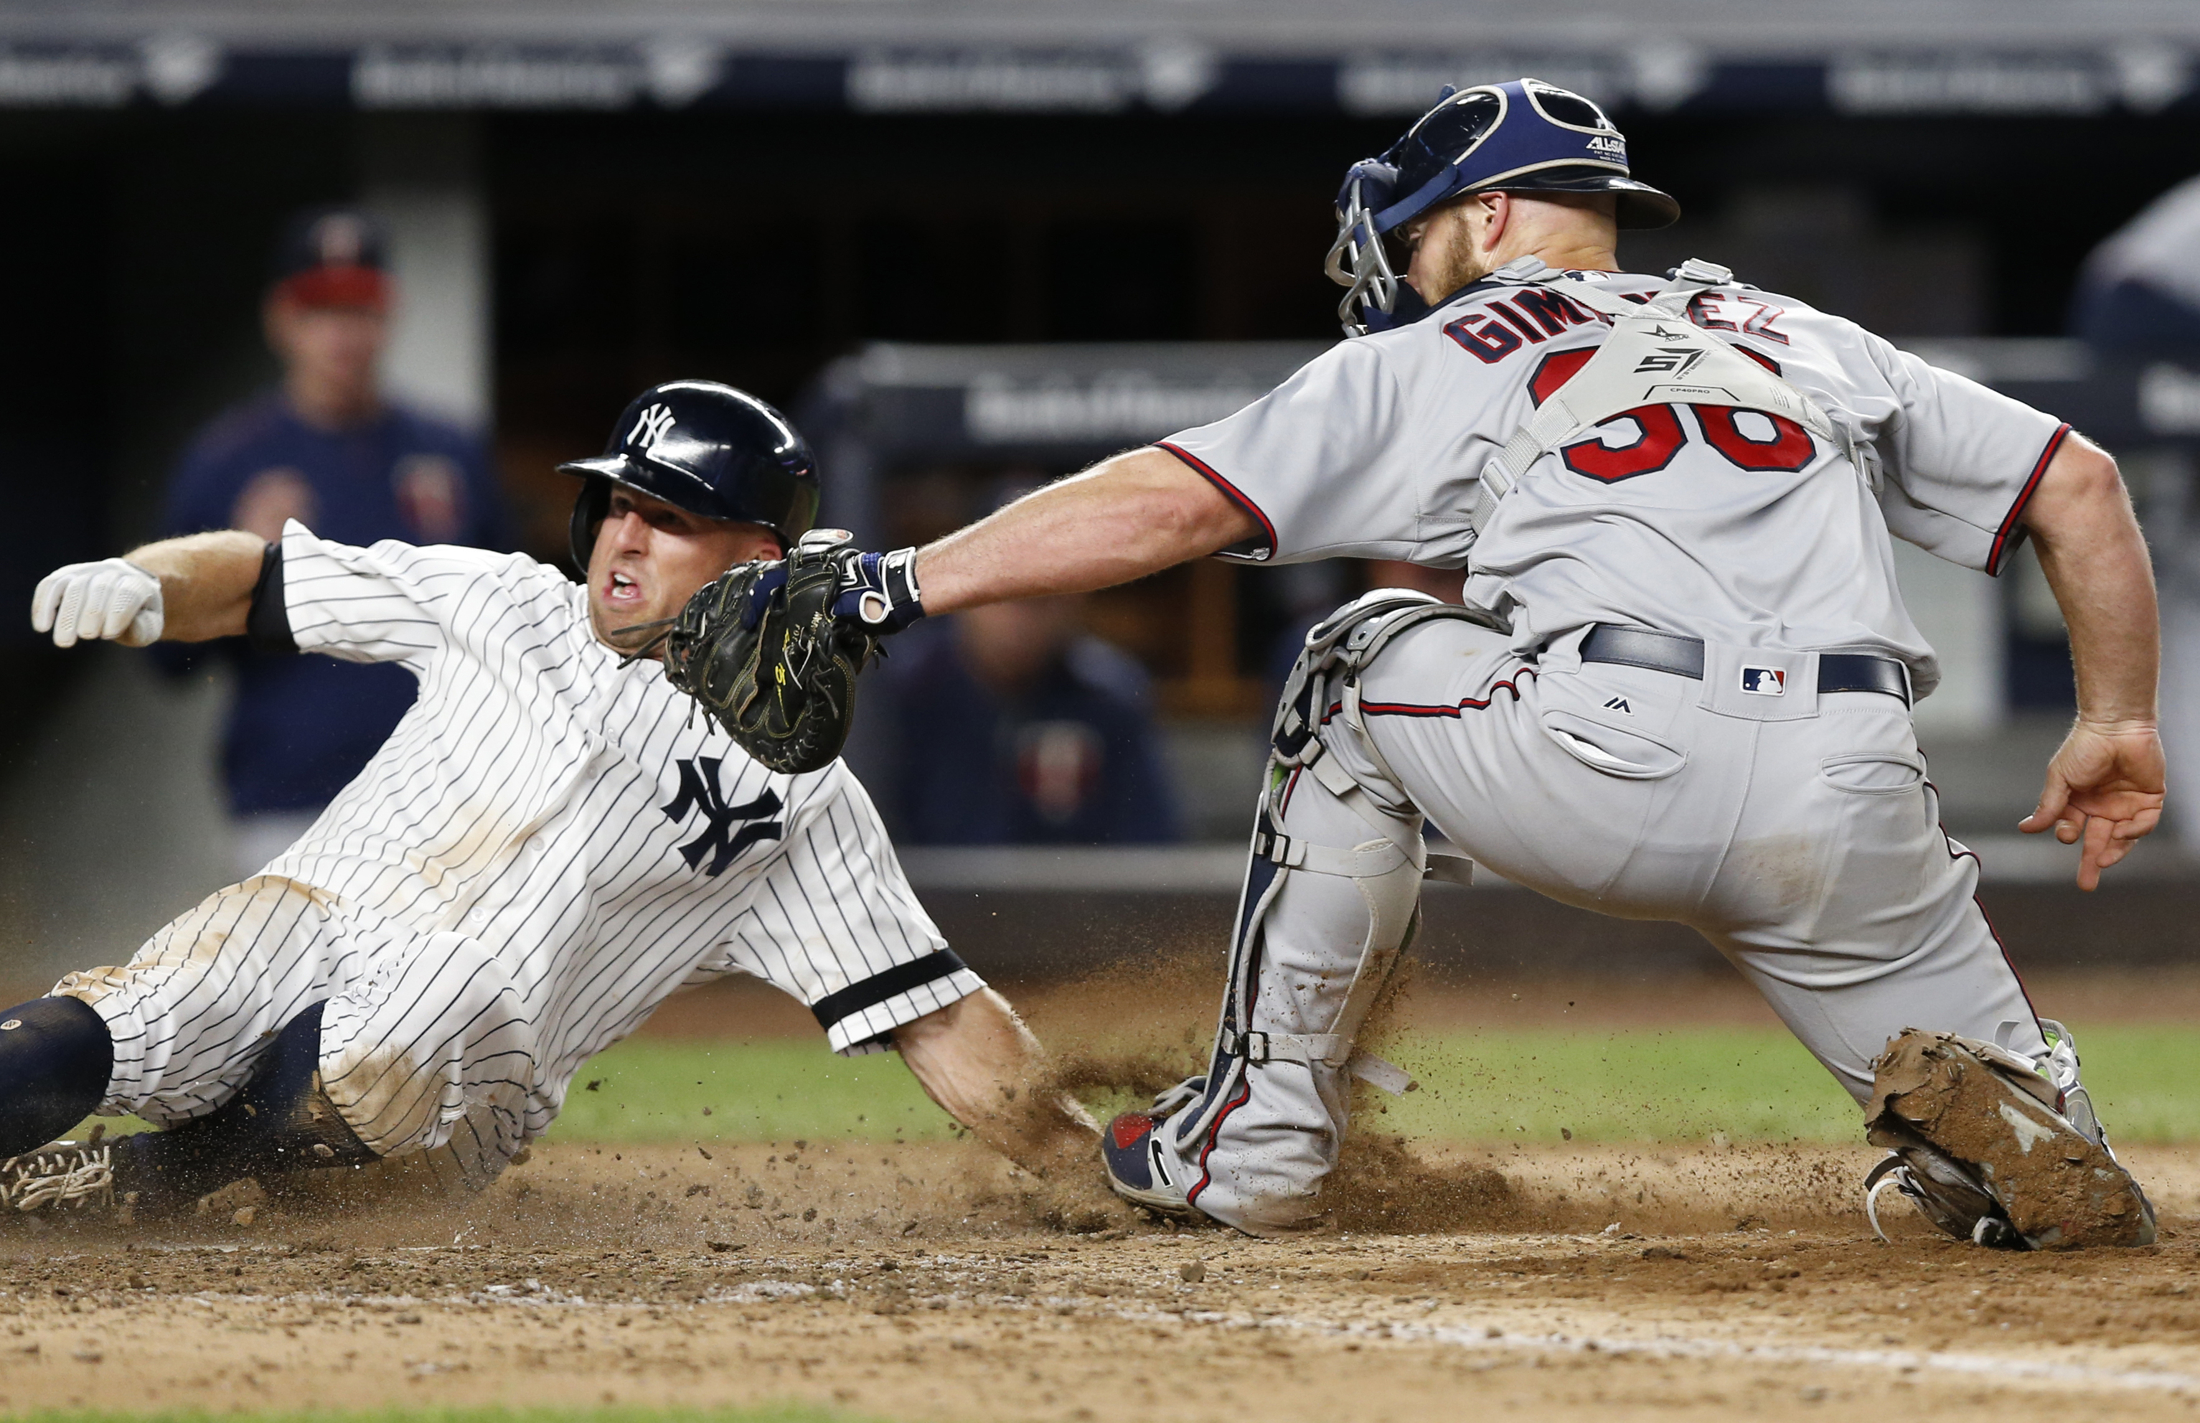 New York Yankees left fielder Brett Gardner (11) reacts after he was tagged out at the plate by Minnesota Twins catcher Chris Gimenez (38) during the seventh inning of a baseball game in New York, Tuesday, Sept. 19, 2017. (Kathy Willens/AP)